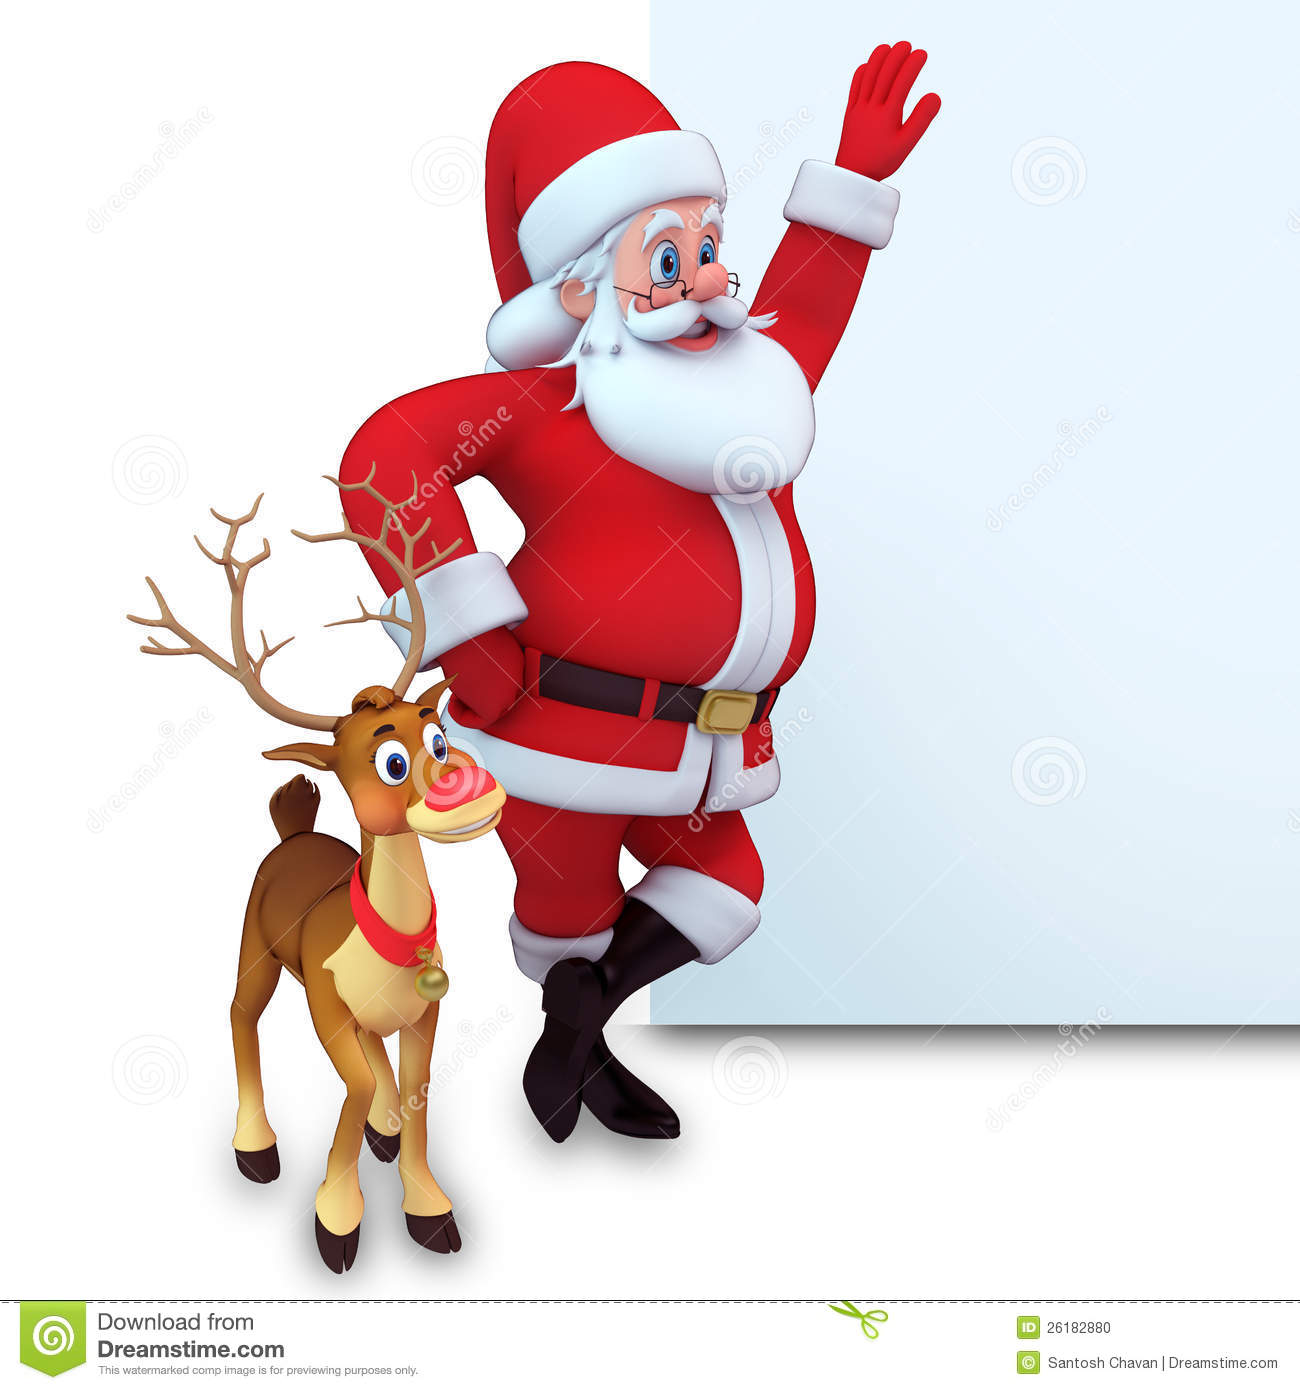 Animated Reindeer Search Results Calendar 2015